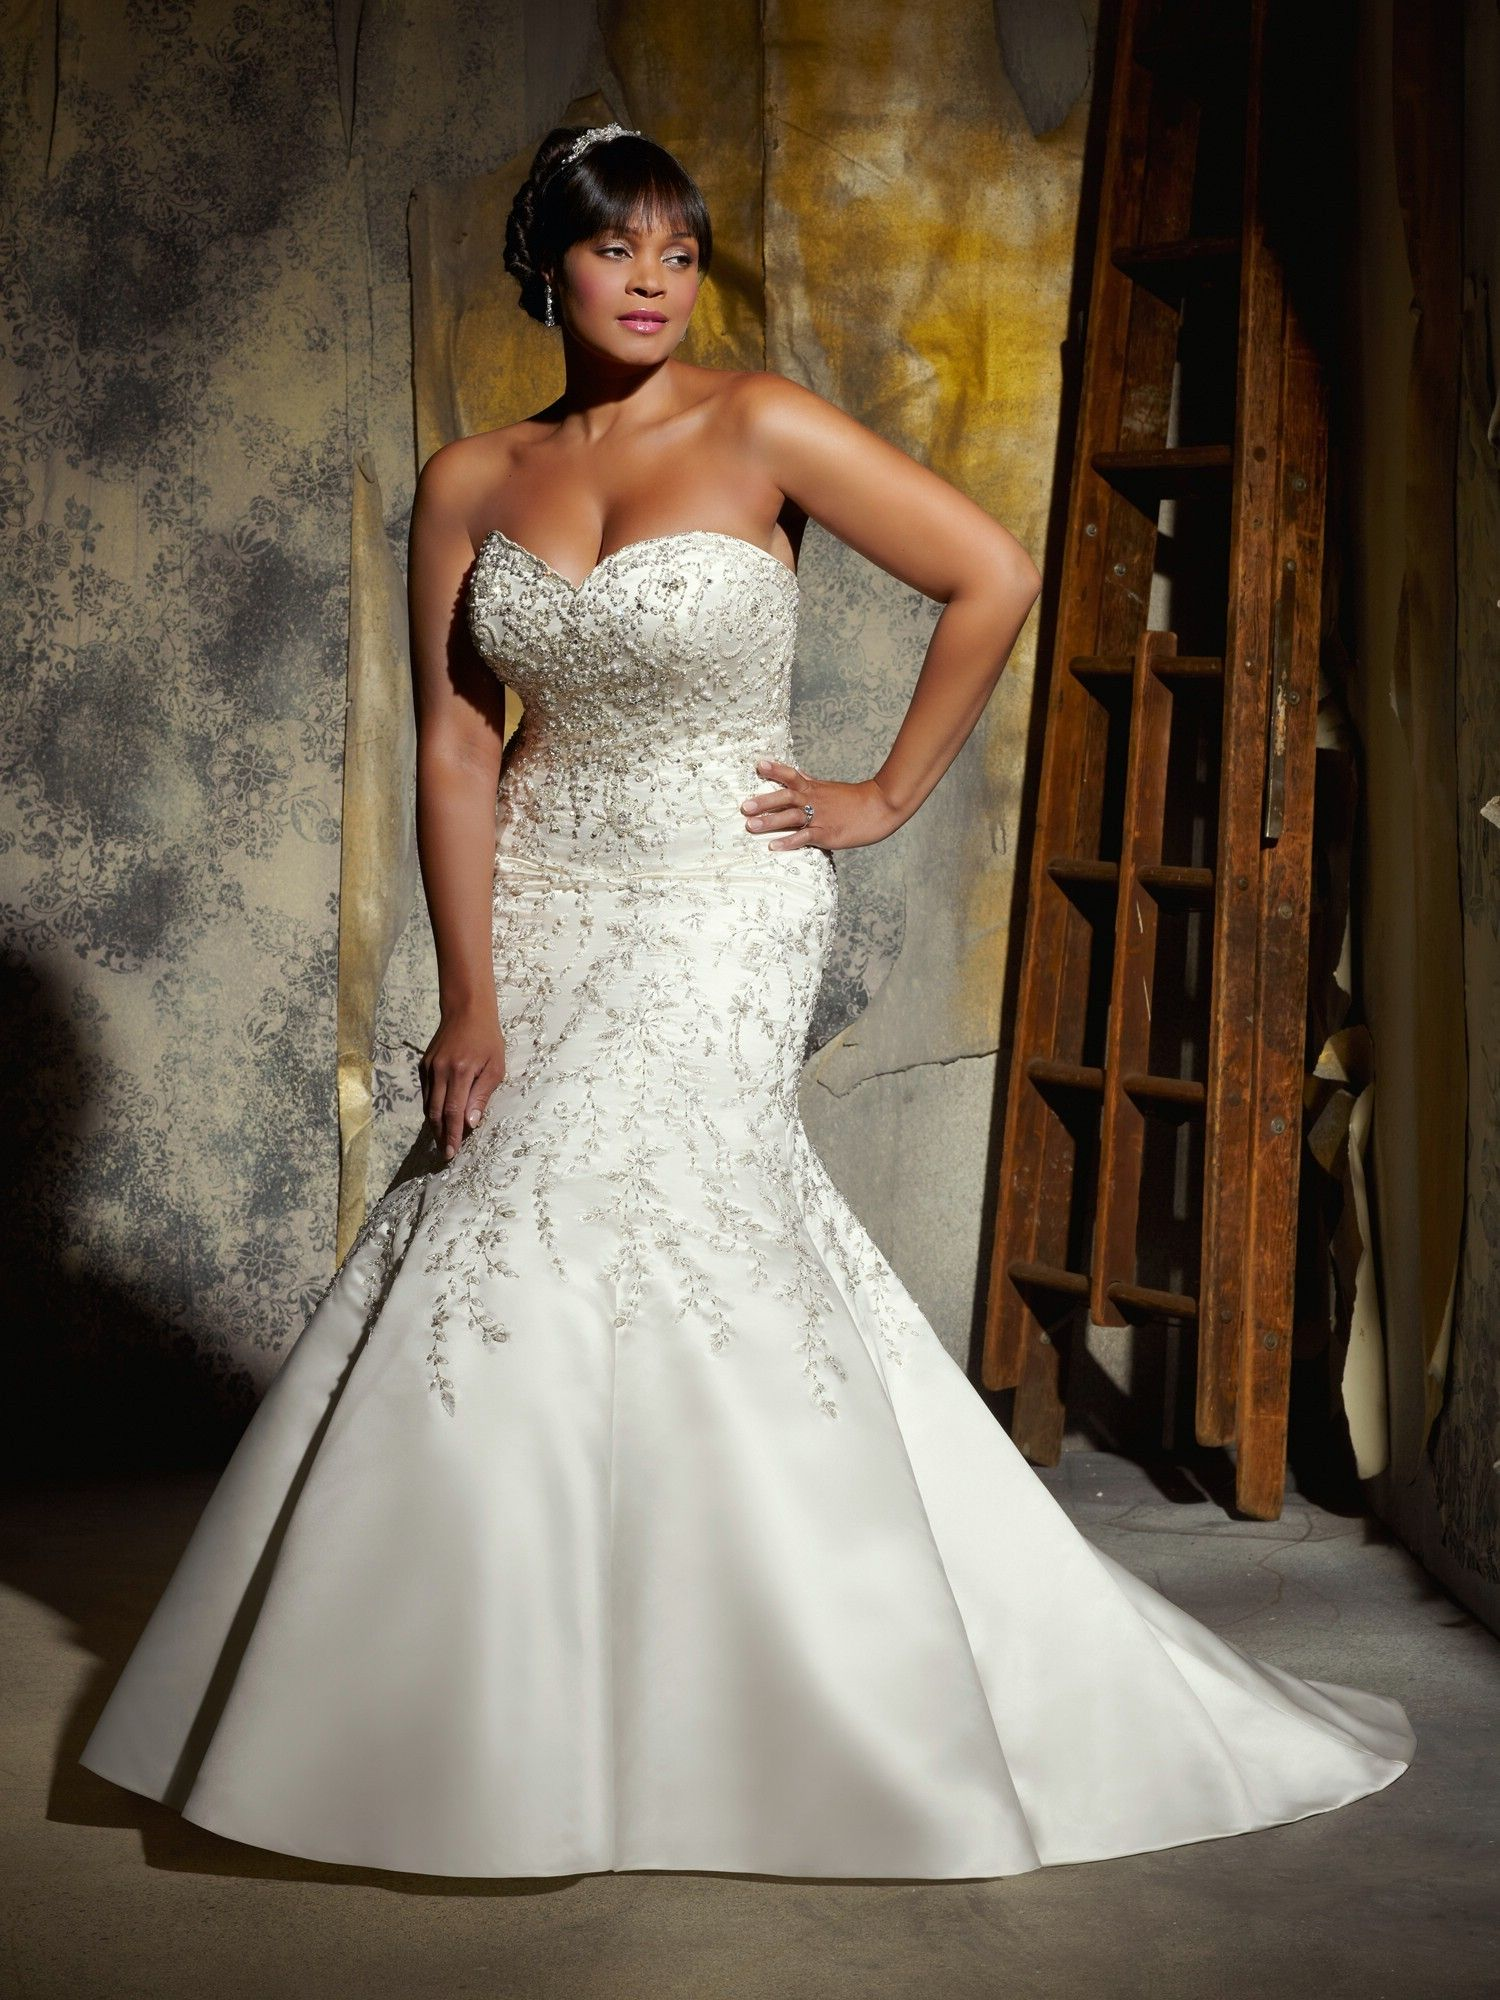 plus size wedding dresses mermaid style - Google Search | What I ...